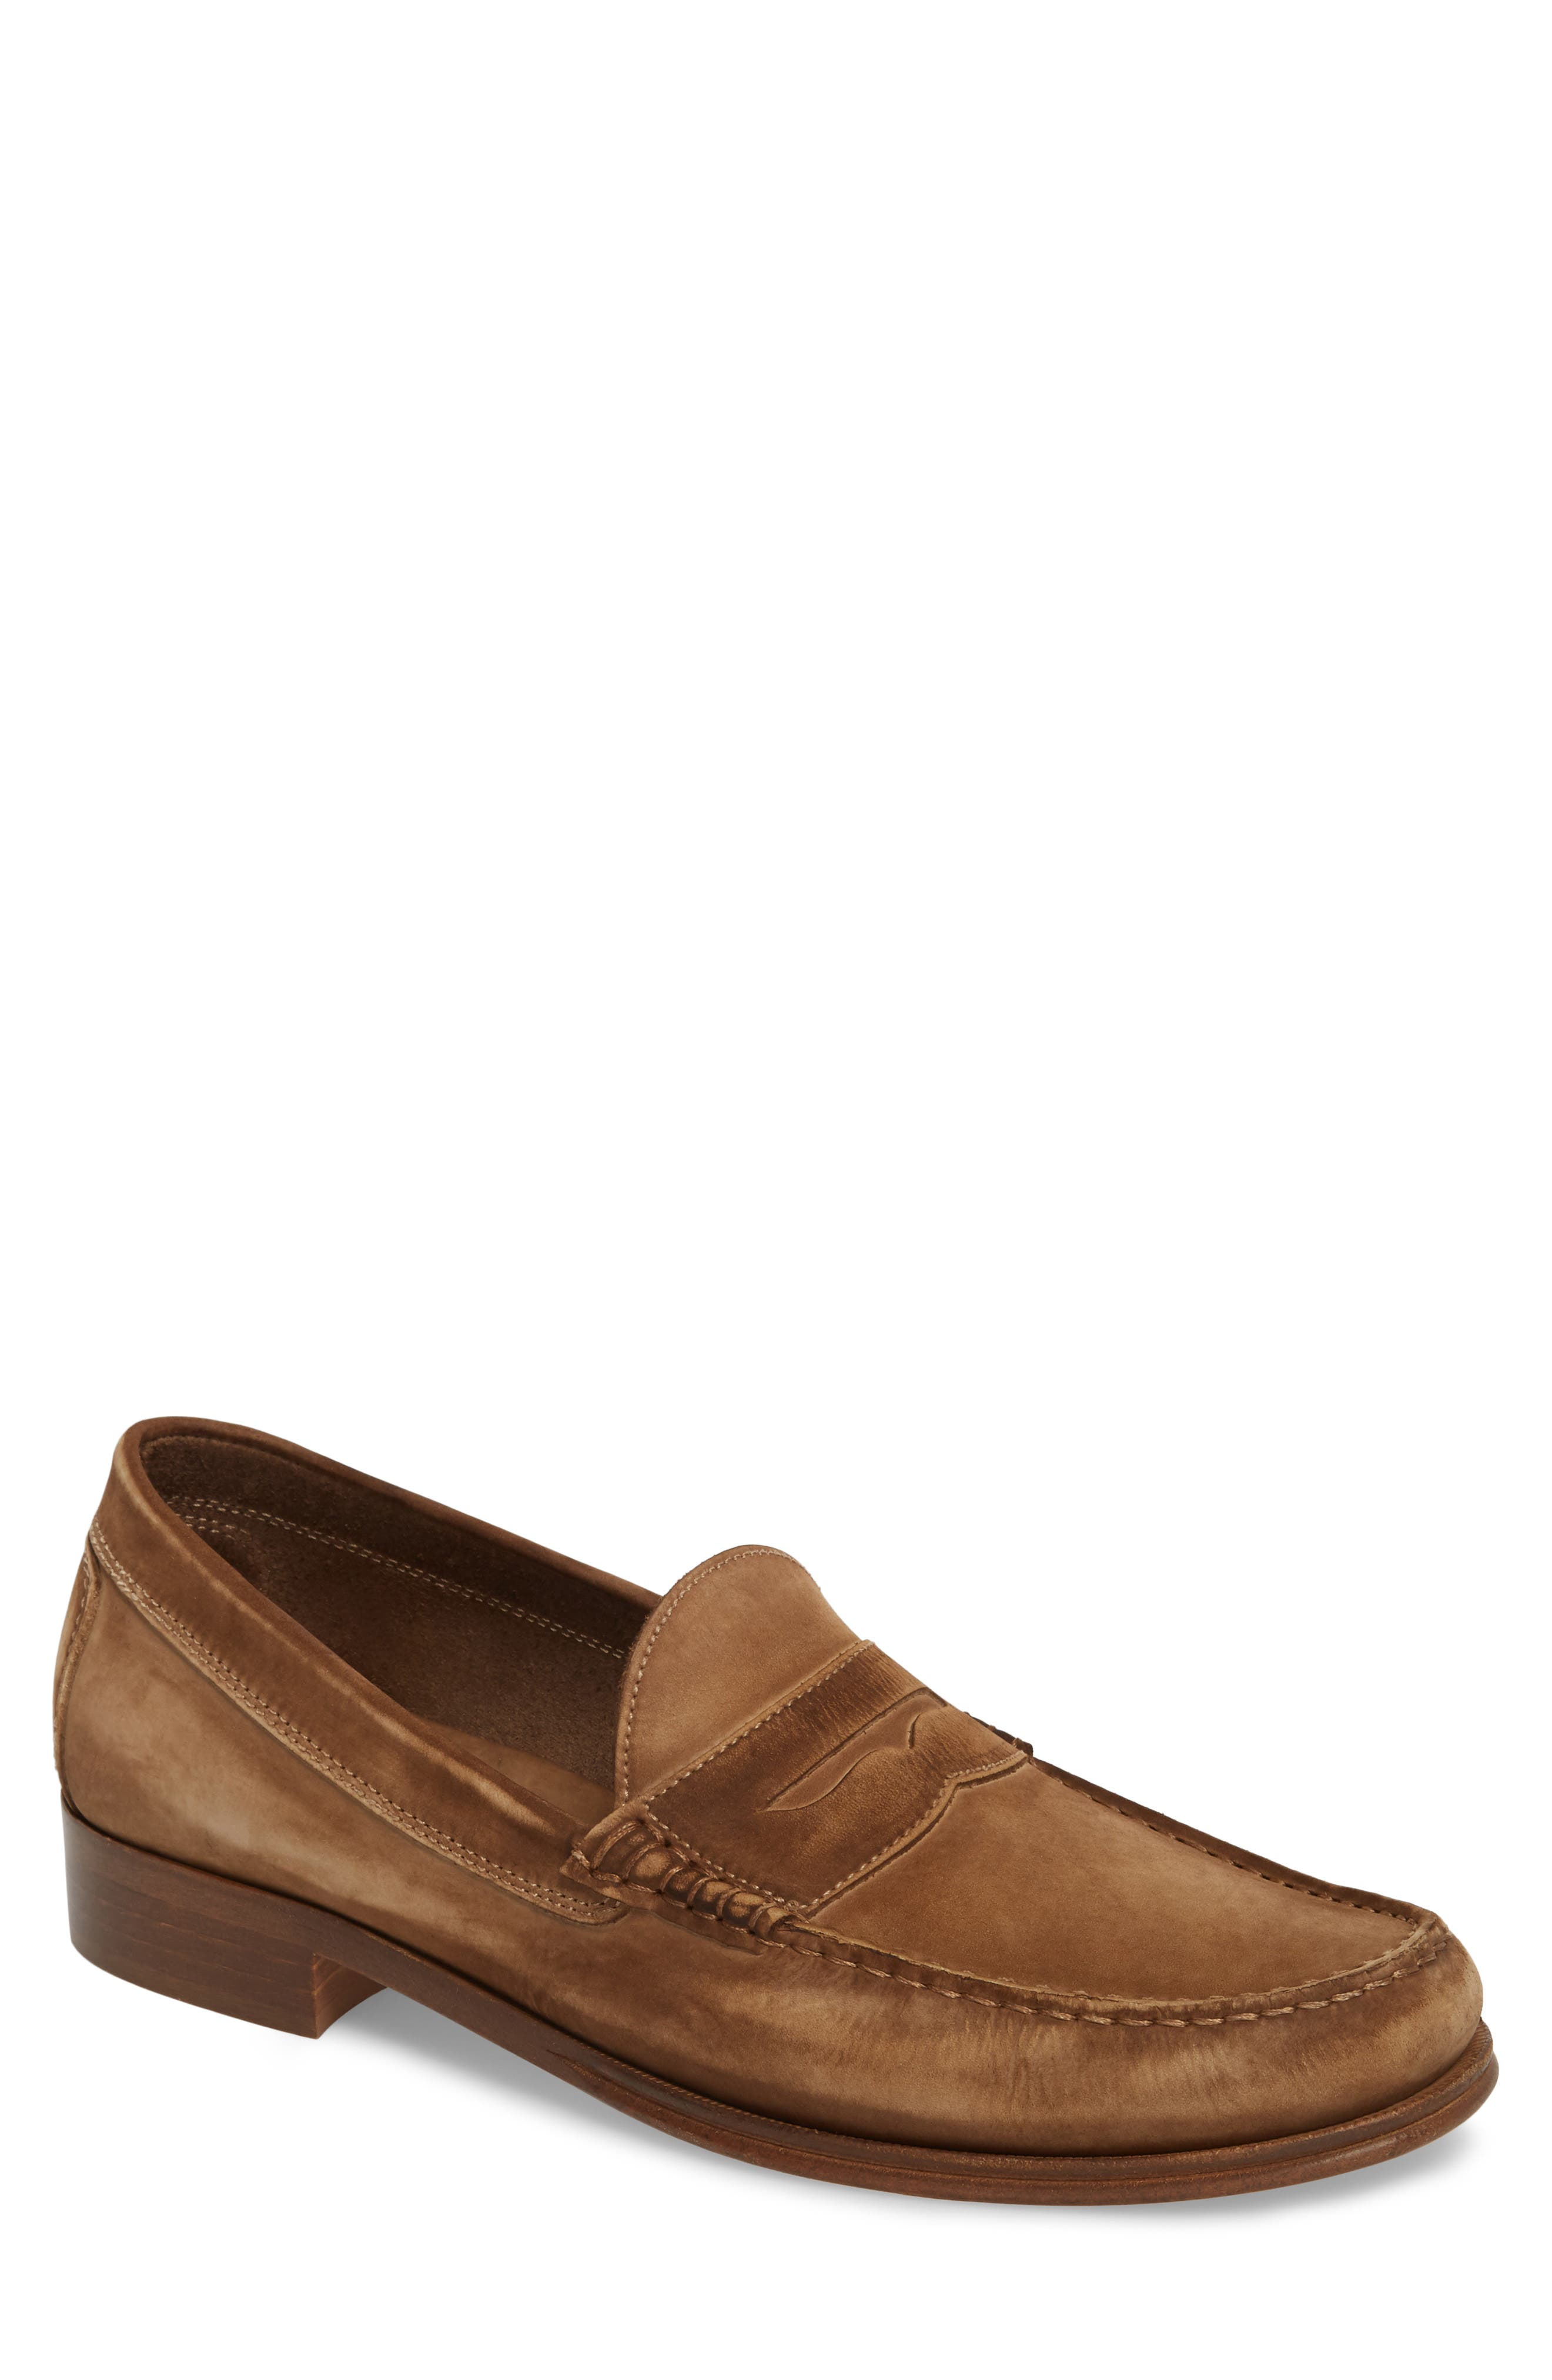 Nicola Penny Loafer,                             Main thumbnail 1, color,                             Chocolate Nubuck Leather